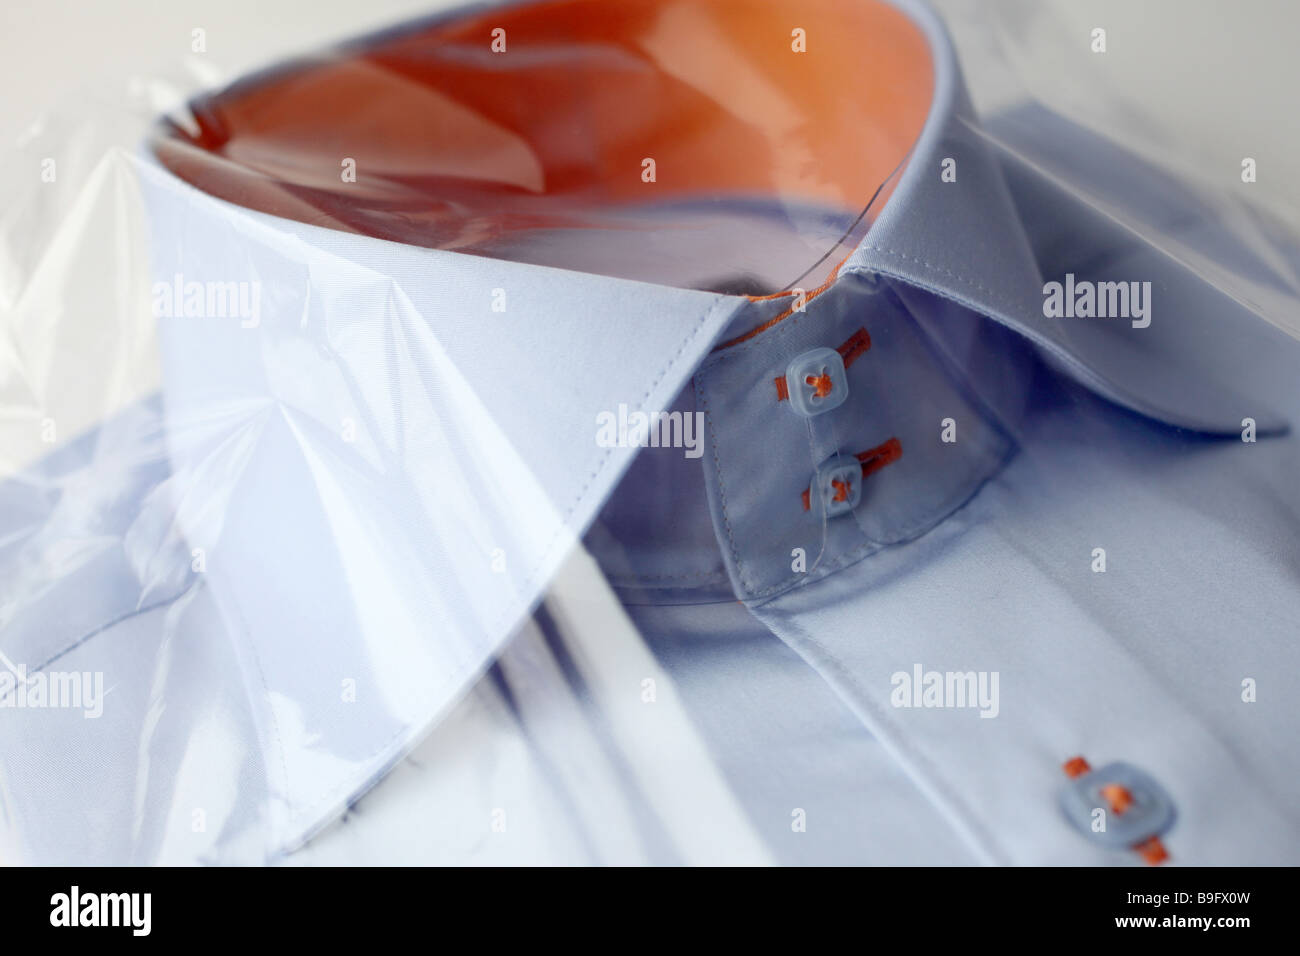 Men's shirts in its transparent packaging - Stock Image